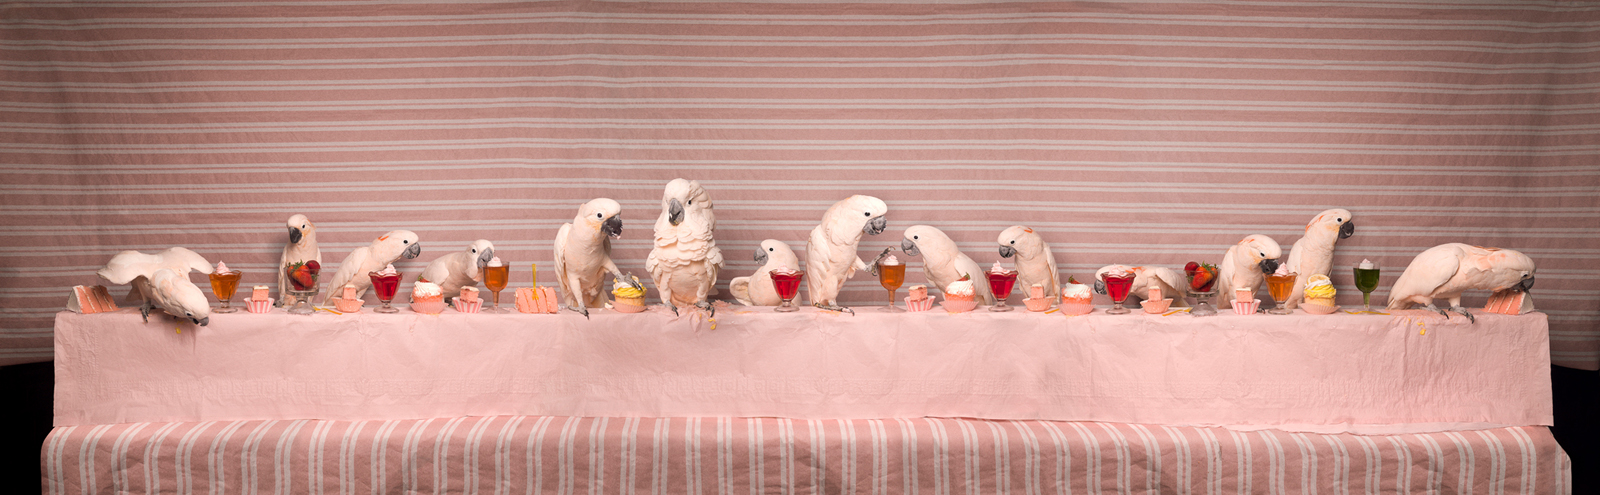 """The Moluccan Cockatoo Feast  United States , 2014  10""""x32"""" 